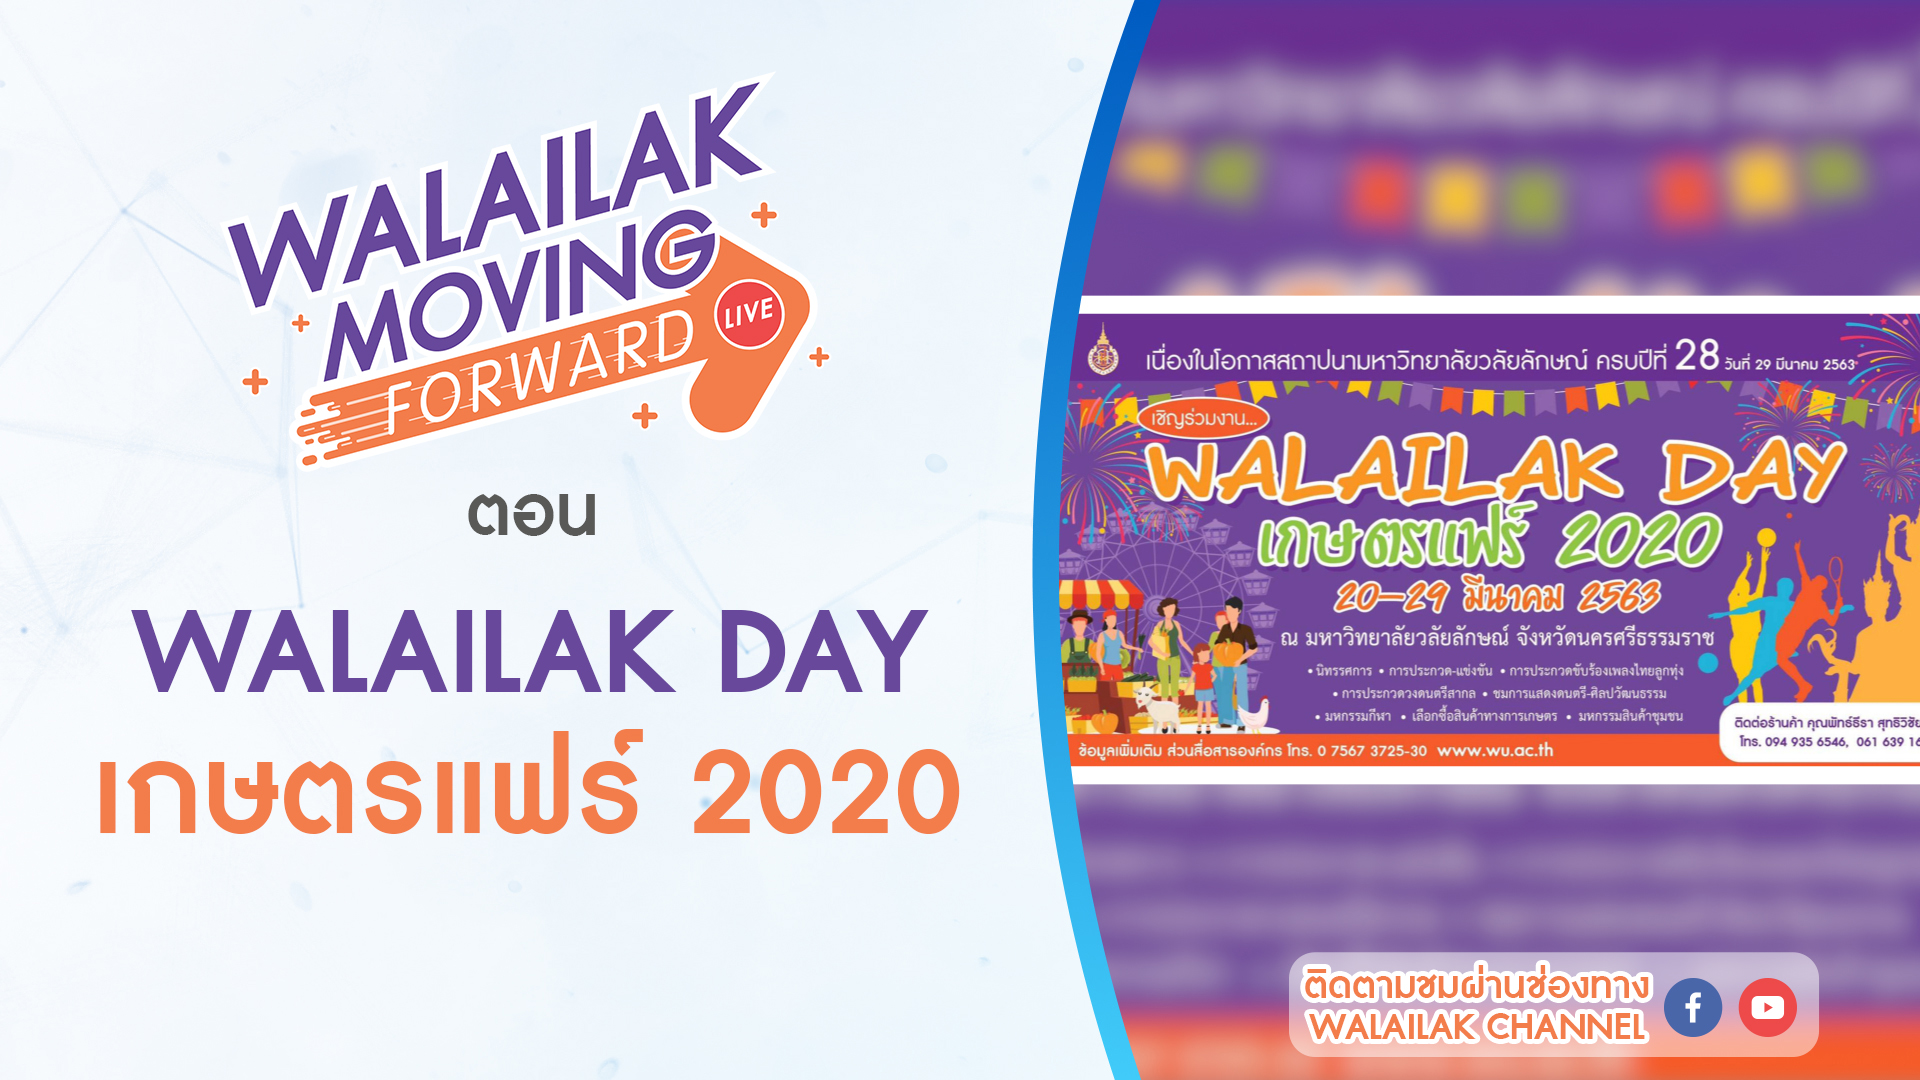 WALAILAK MOVING FORWARD (LIVE) - WALAILAK DAY เกษตรแฟร์ 2020